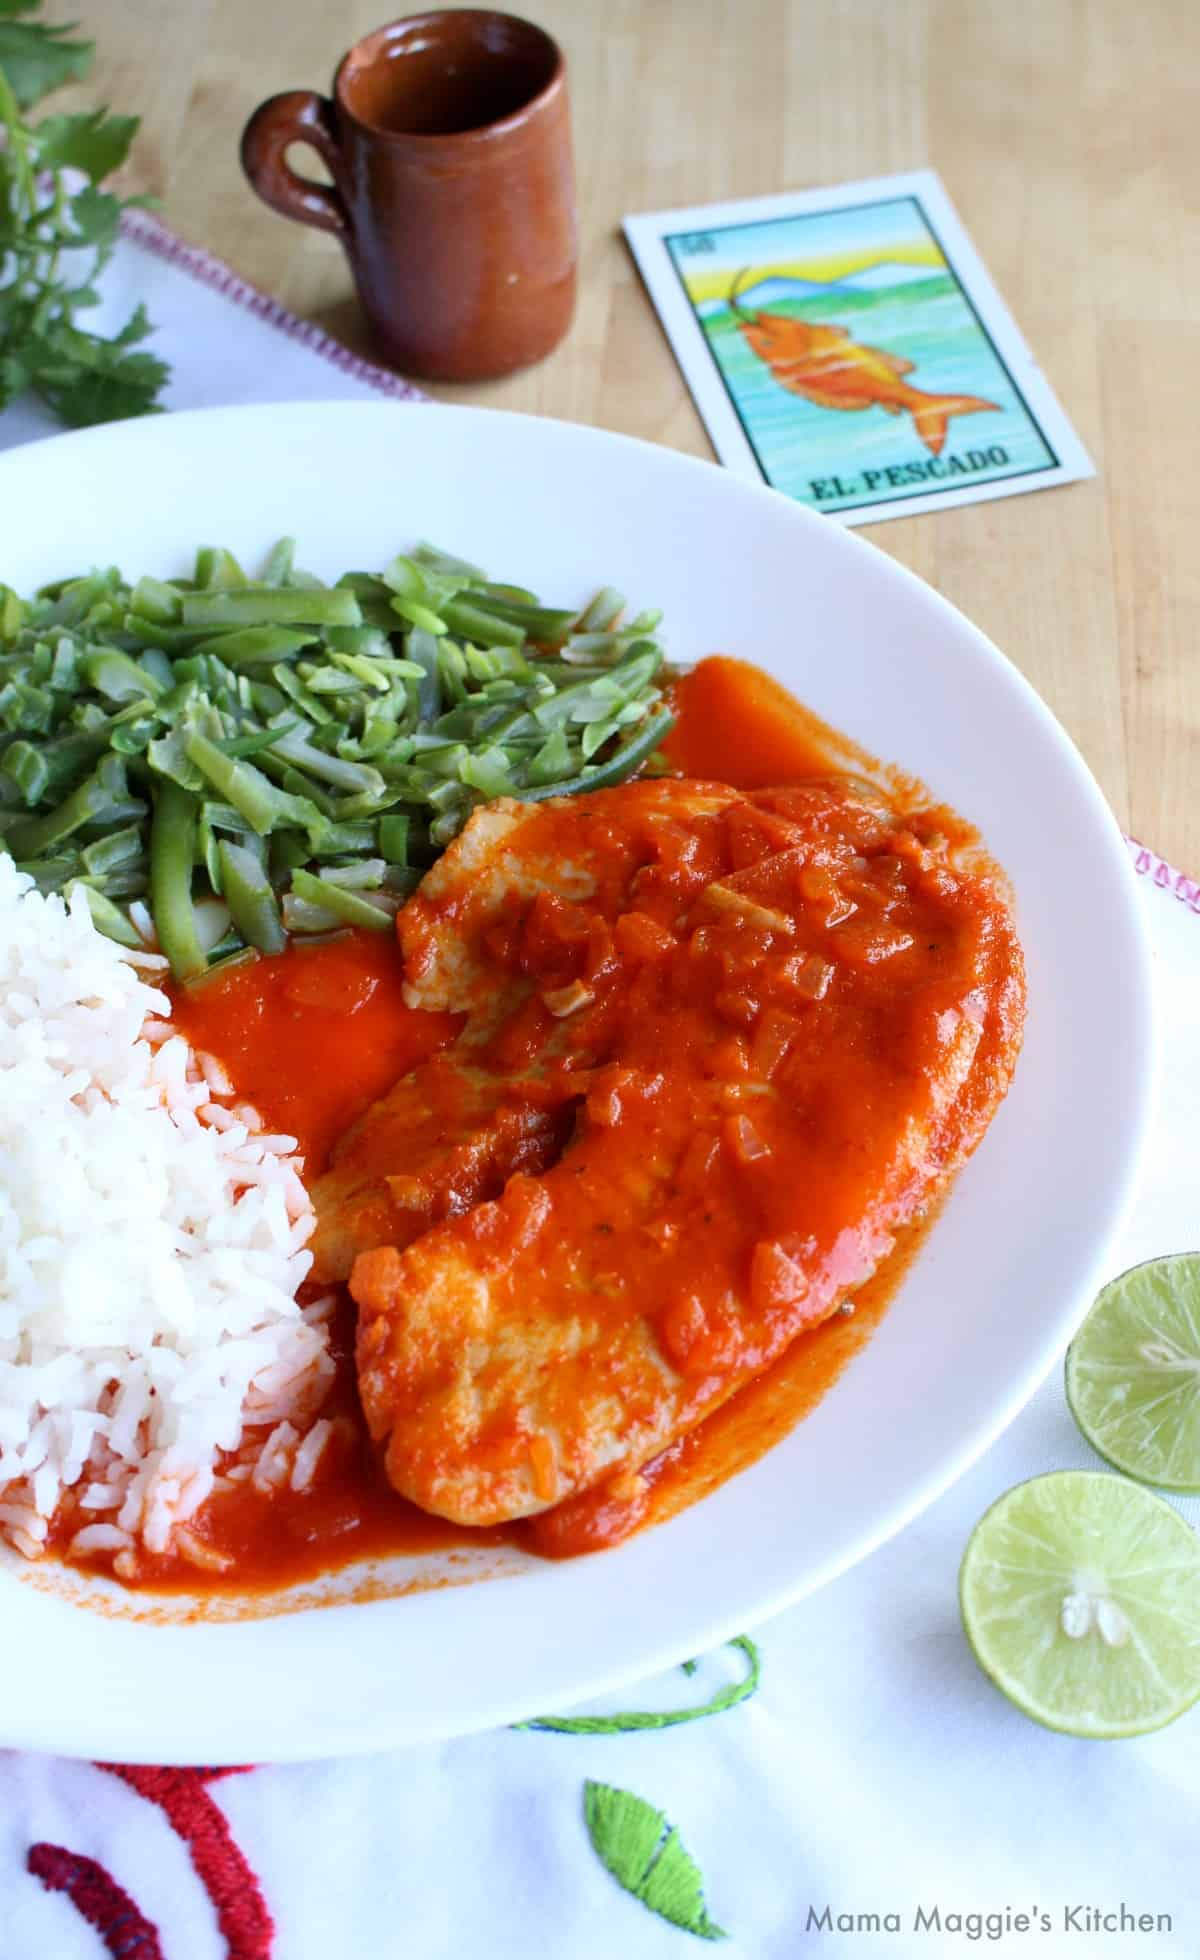 "Deviled Fish served on a white plate next to white rice and green beans. ""Width ="" 1200 ""height ="" 1960 ""class ="" lazy lazy-hidden alignnone size-full wp-image-17737 ""srcset ="" ""srcset ="" https://inmamamaggieskitchen.com/wp-content/uploads/2020 /03/Pescado-a-la-Diabla.jpg 1200w, https://inmamamaggieskitchen.com/wp-content/uploads/2020/03/Pescado-a -la-Diabla-184x300.jpg 184w, https://inmamaggieskitchen .com / wp-content / uploads / 2020/03 / Pescado-a-la-Diabla-627x1024.jpg 627w, https://inmamaggieskitchen.com/wp -indhold / uploads / 2020/03 / Pescado-a-la- Diabla-768x1254.jpg 768w, https://inmamamaggieskitchen.com/wp-content/uploads/2020/03/Pescado-a-la-Diabla-940x1536. jpg 940w, https://inmamamaggieskitchen.com/wp-content/uploads/2020/03/Pescado-a-la-Diabla-735x1201.jpg 735w ""sizes ="" (max width: 1200px) 100vw, 1200px"